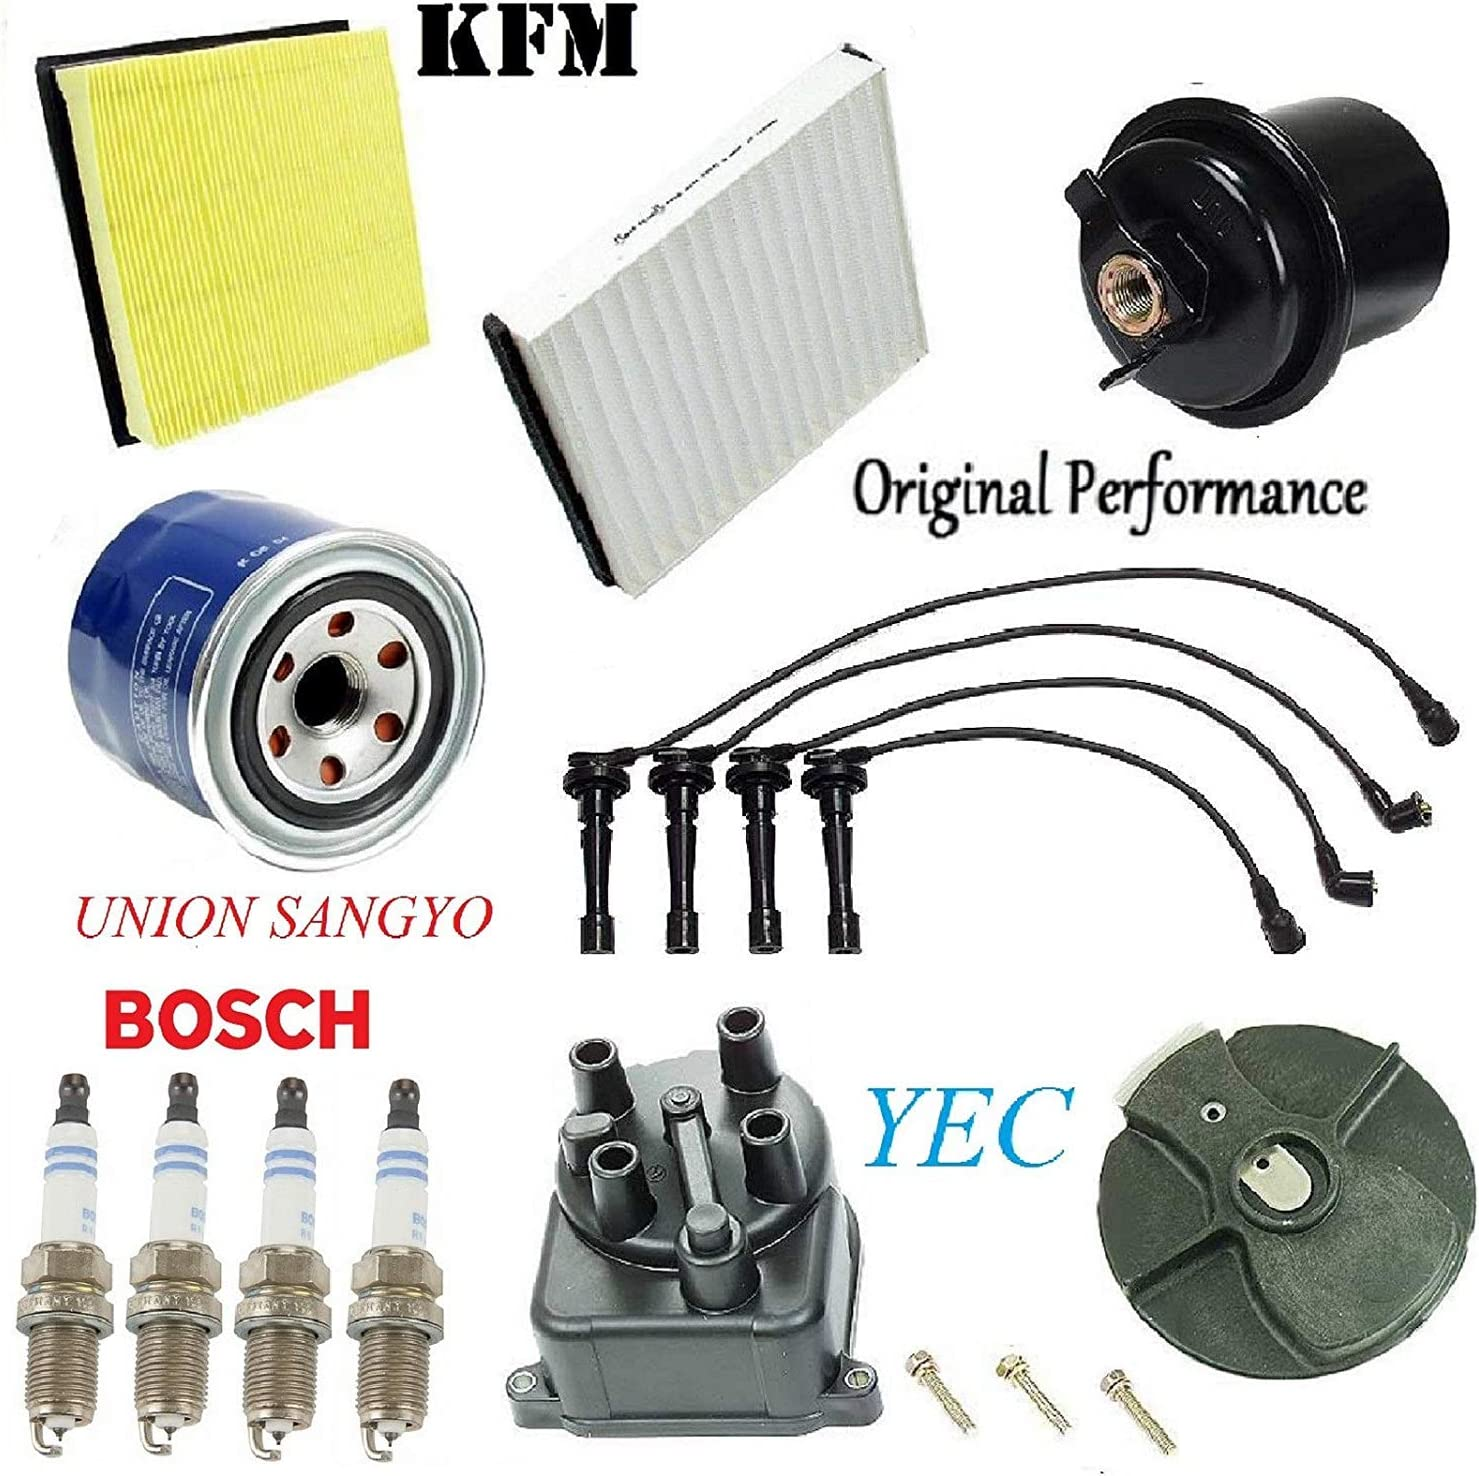 Tune Up Kit with Filters Cap Rotor Plugs Wire Set FIT Honda CR-V 2.0L 1998-1999 2001